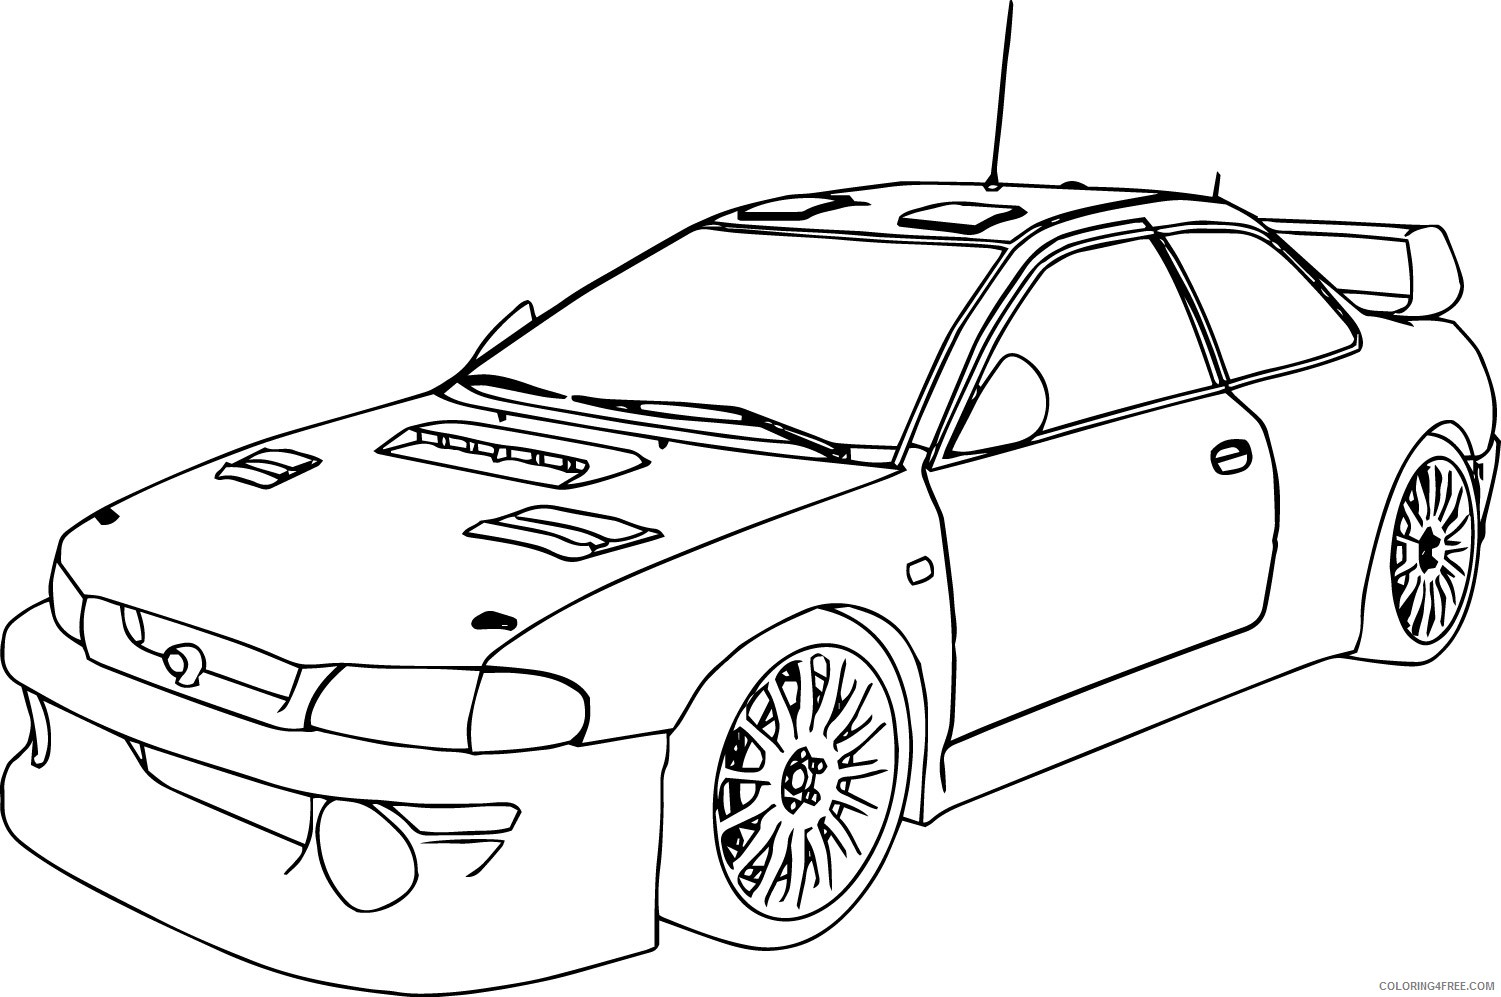 Nascar Drawing At Getdrawings